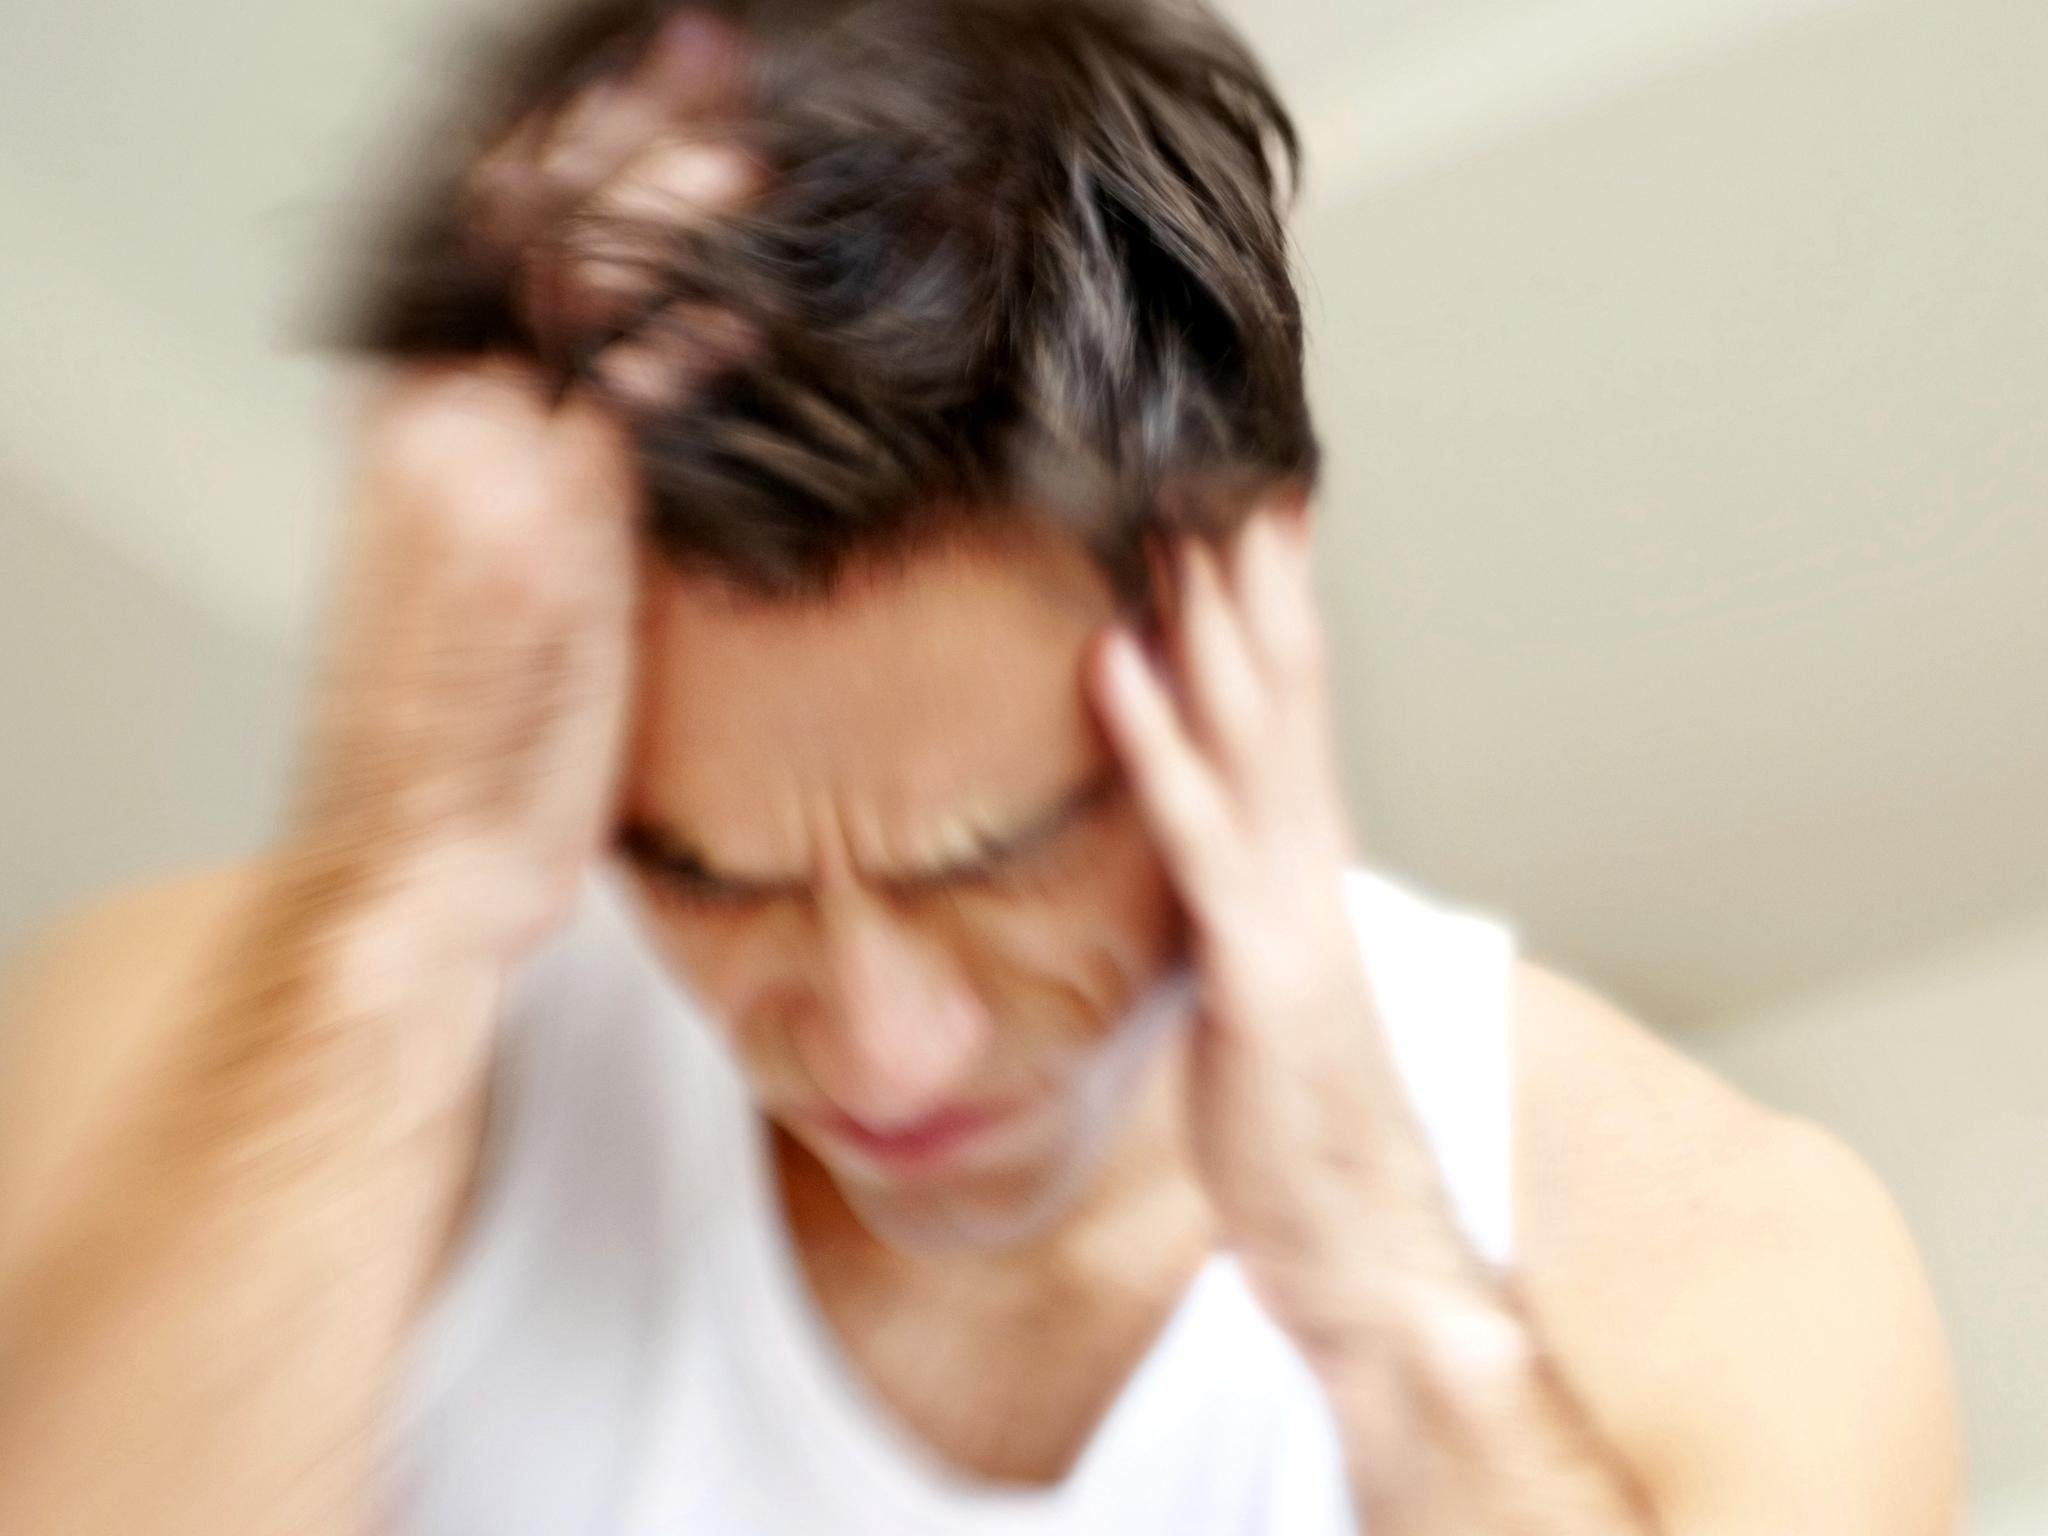 My Headache And Numbness Turned Out To Be A Stroke At Age 36 recommendations